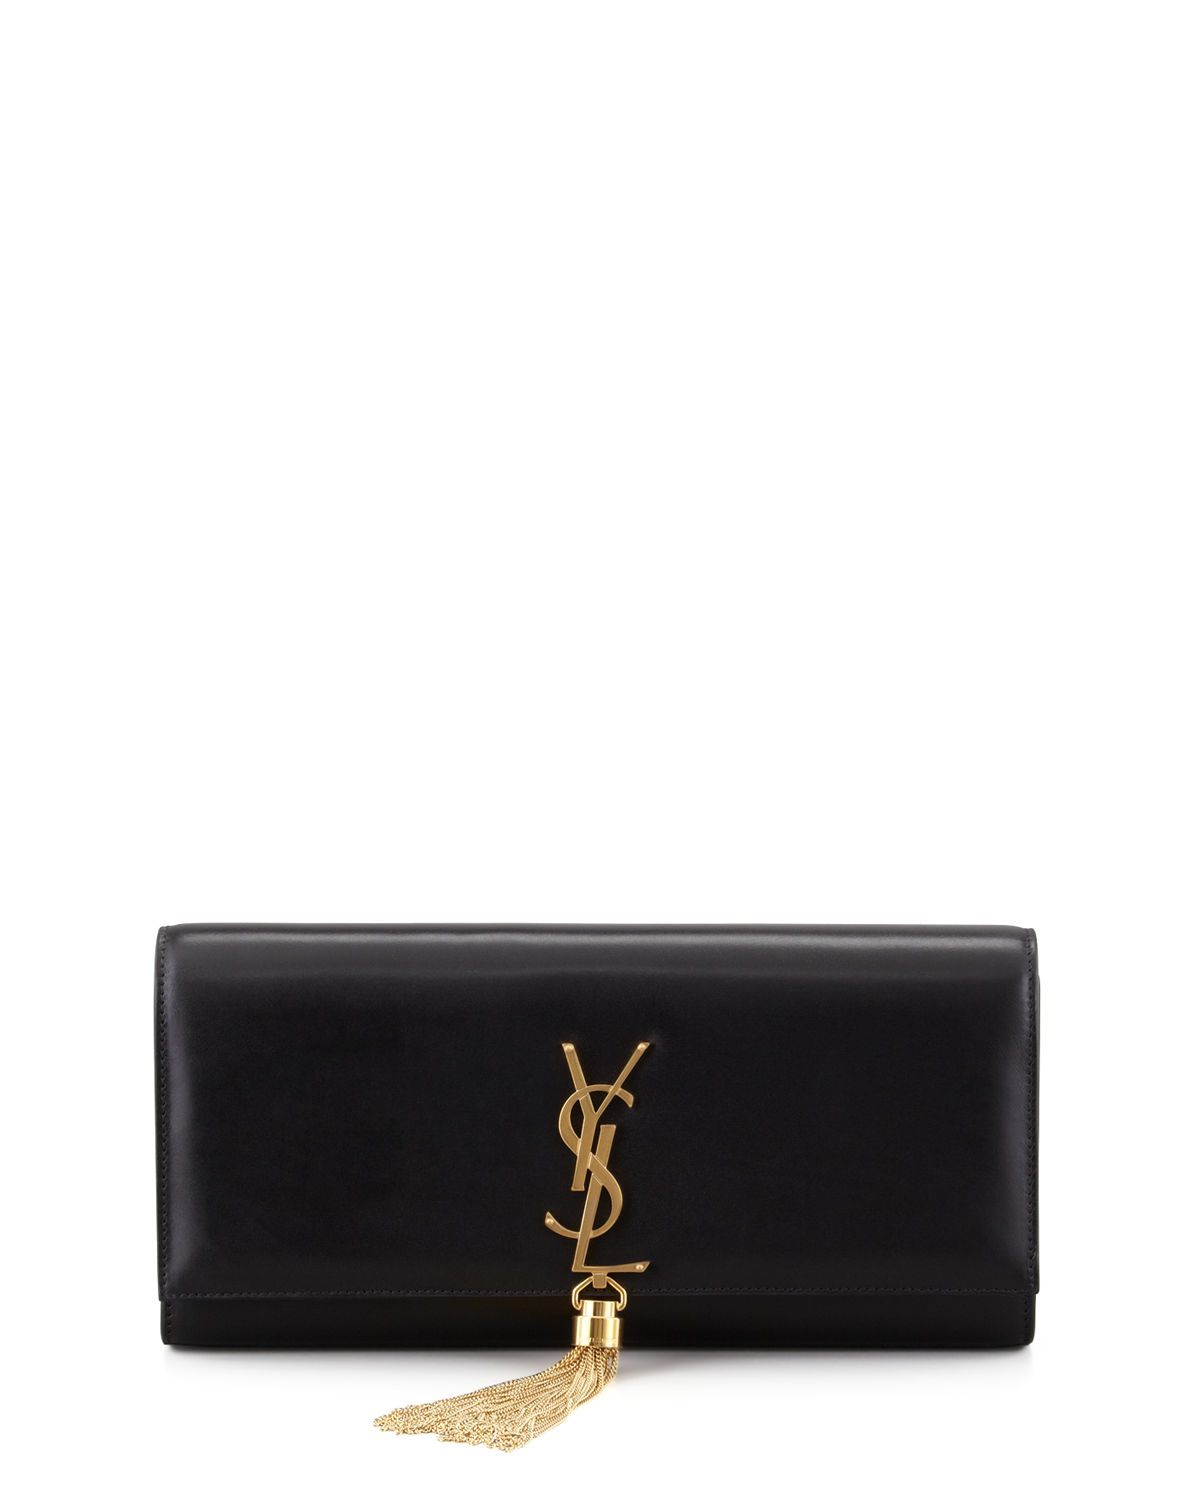 f9d392c4b3 Saint Laurent Kate Monogram YSL Full-Flap Clutch Bag